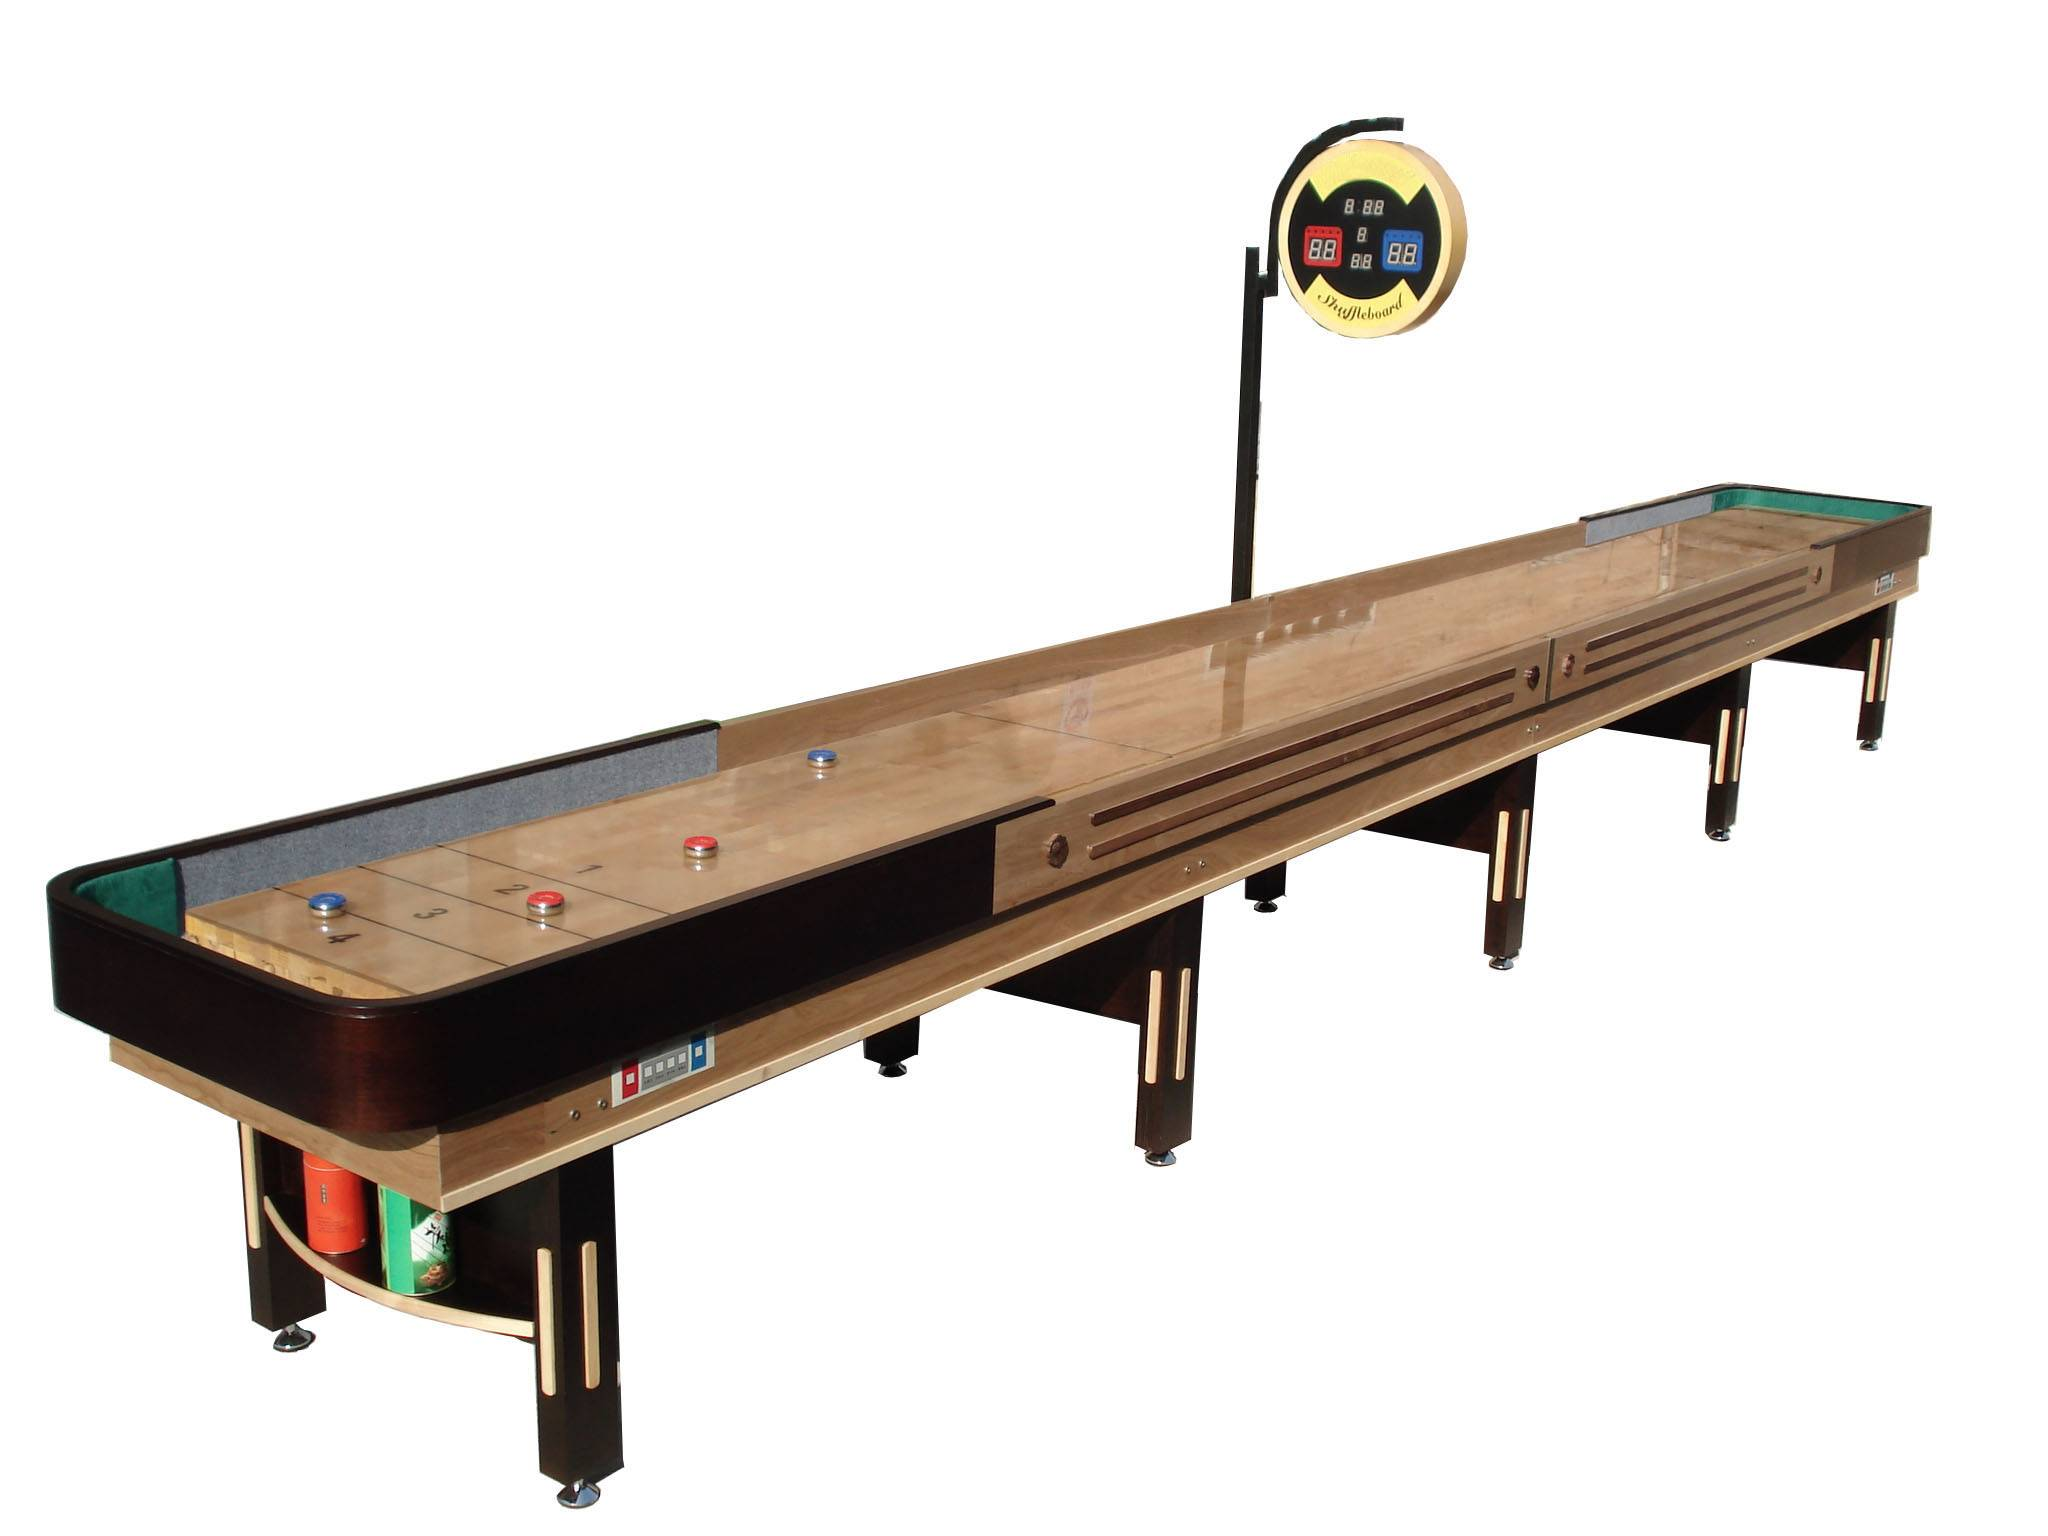 Tags:Universal Billiards Products,Outdoor Games Huge Range Of Quality  Garden Games,THE WOODSHOP McClure Tables,California Billiard Supply Lens  Billiards Est ...